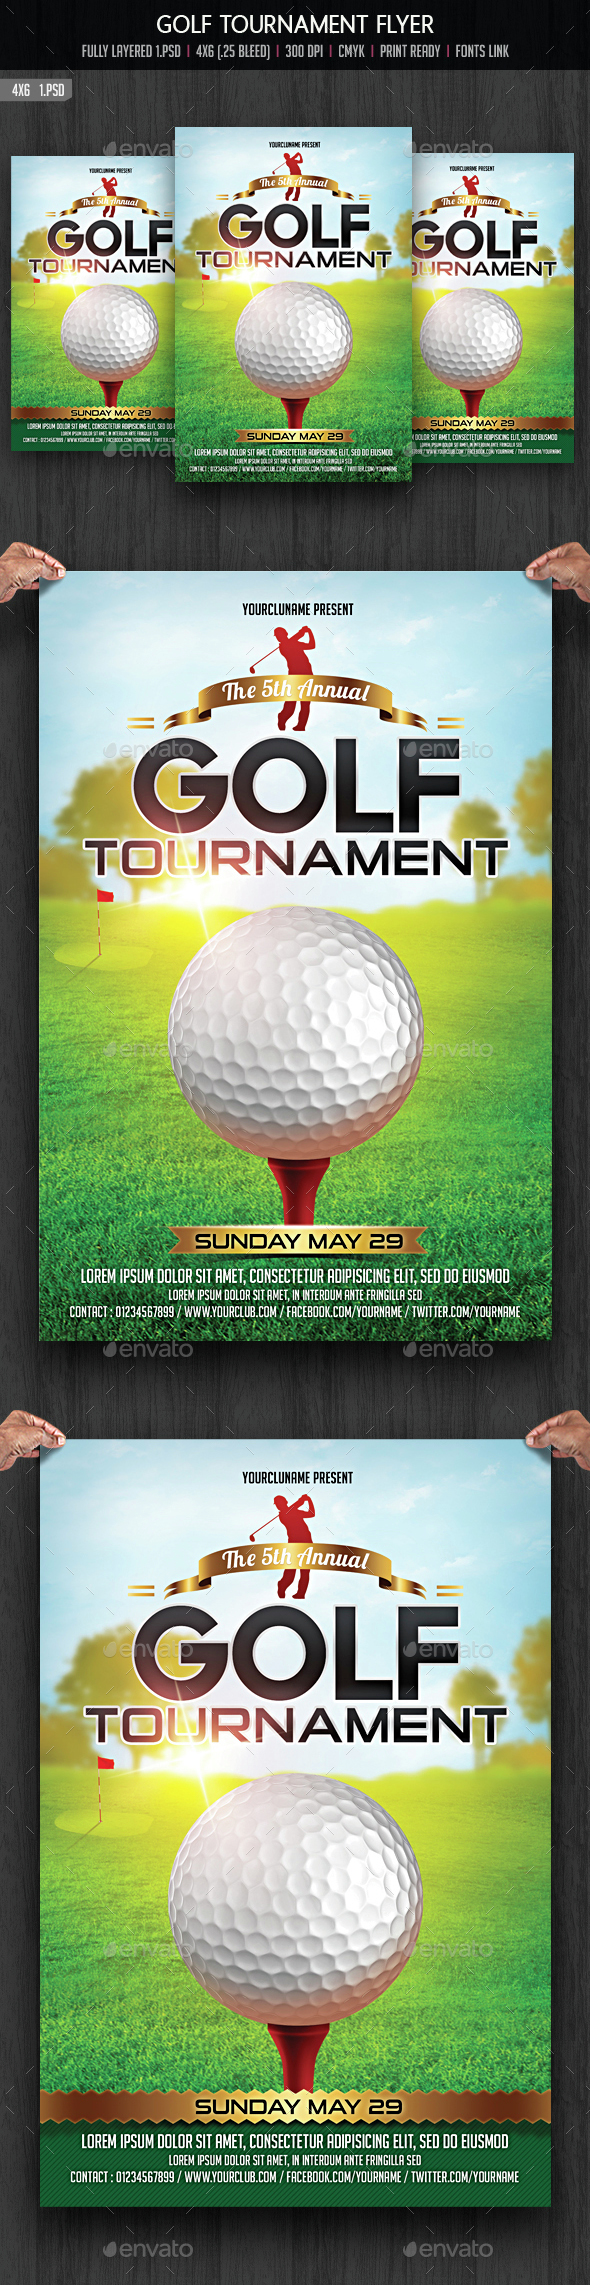 Golf tournament flyer by creativeartx graphicriver for Golf tournament program template